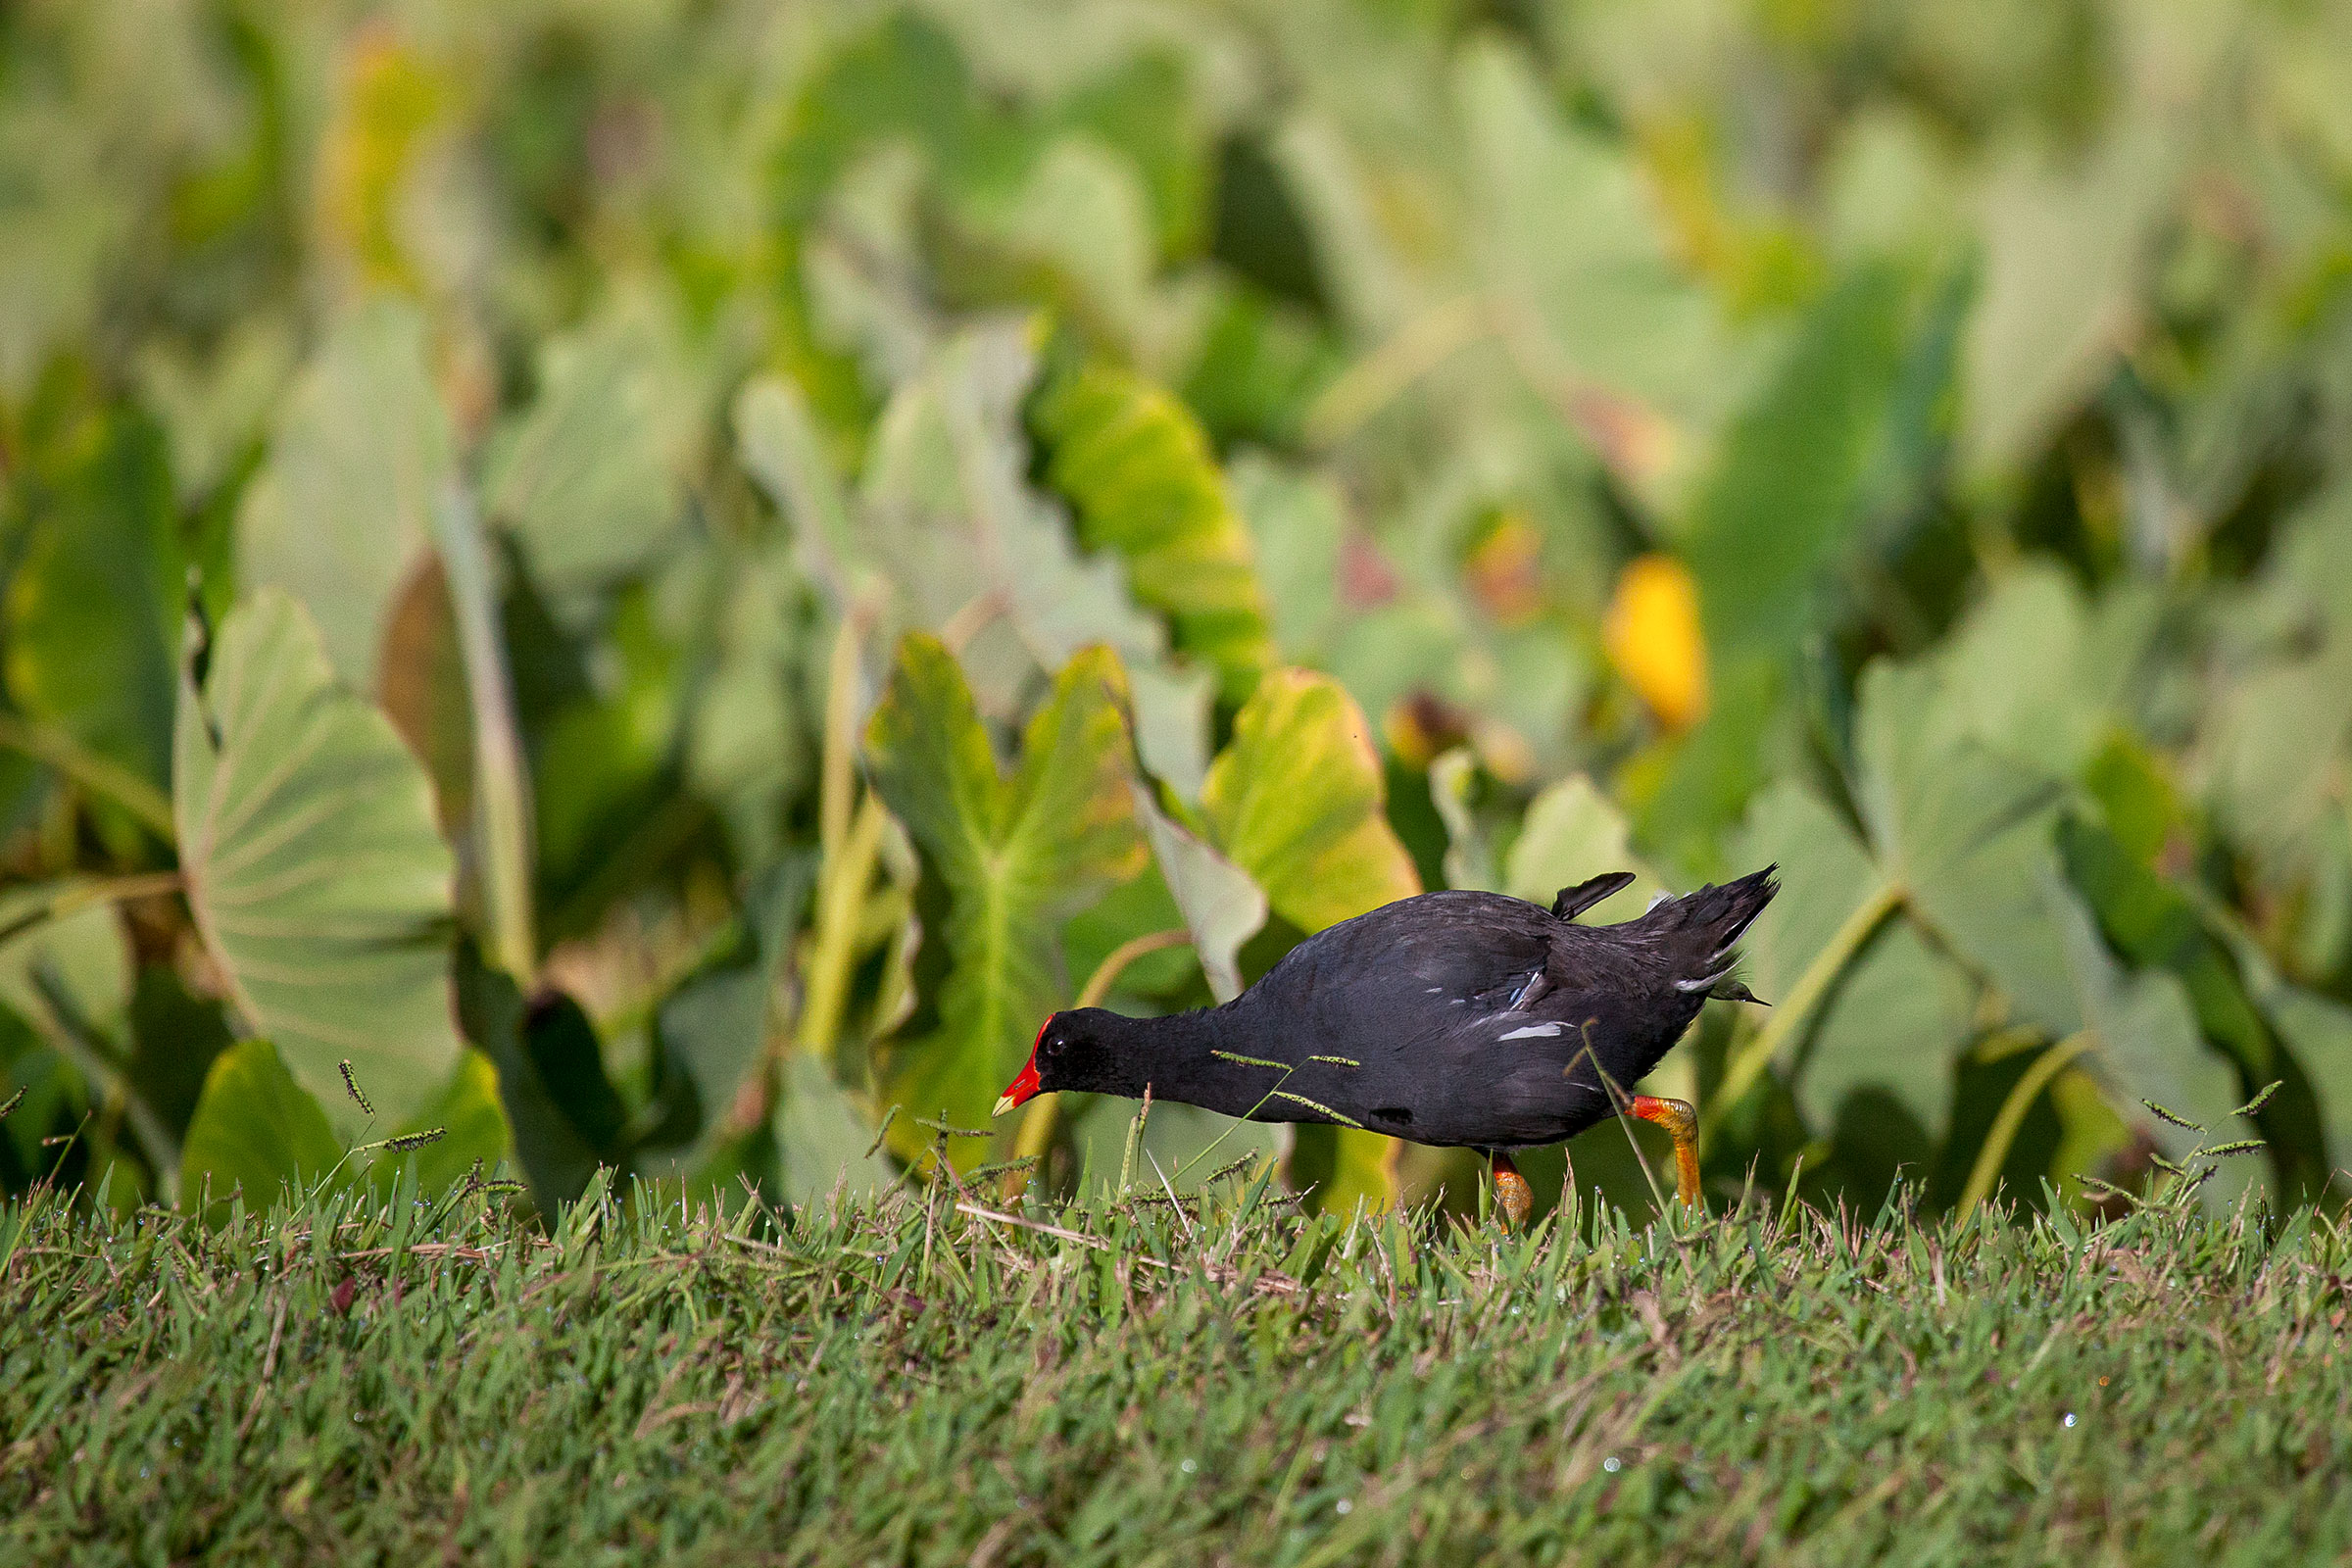 A Hawaiian Common Gallinule—a large black bird with a bright red bill—walks in a grassy field, with broad-leafed vegetation in the background.